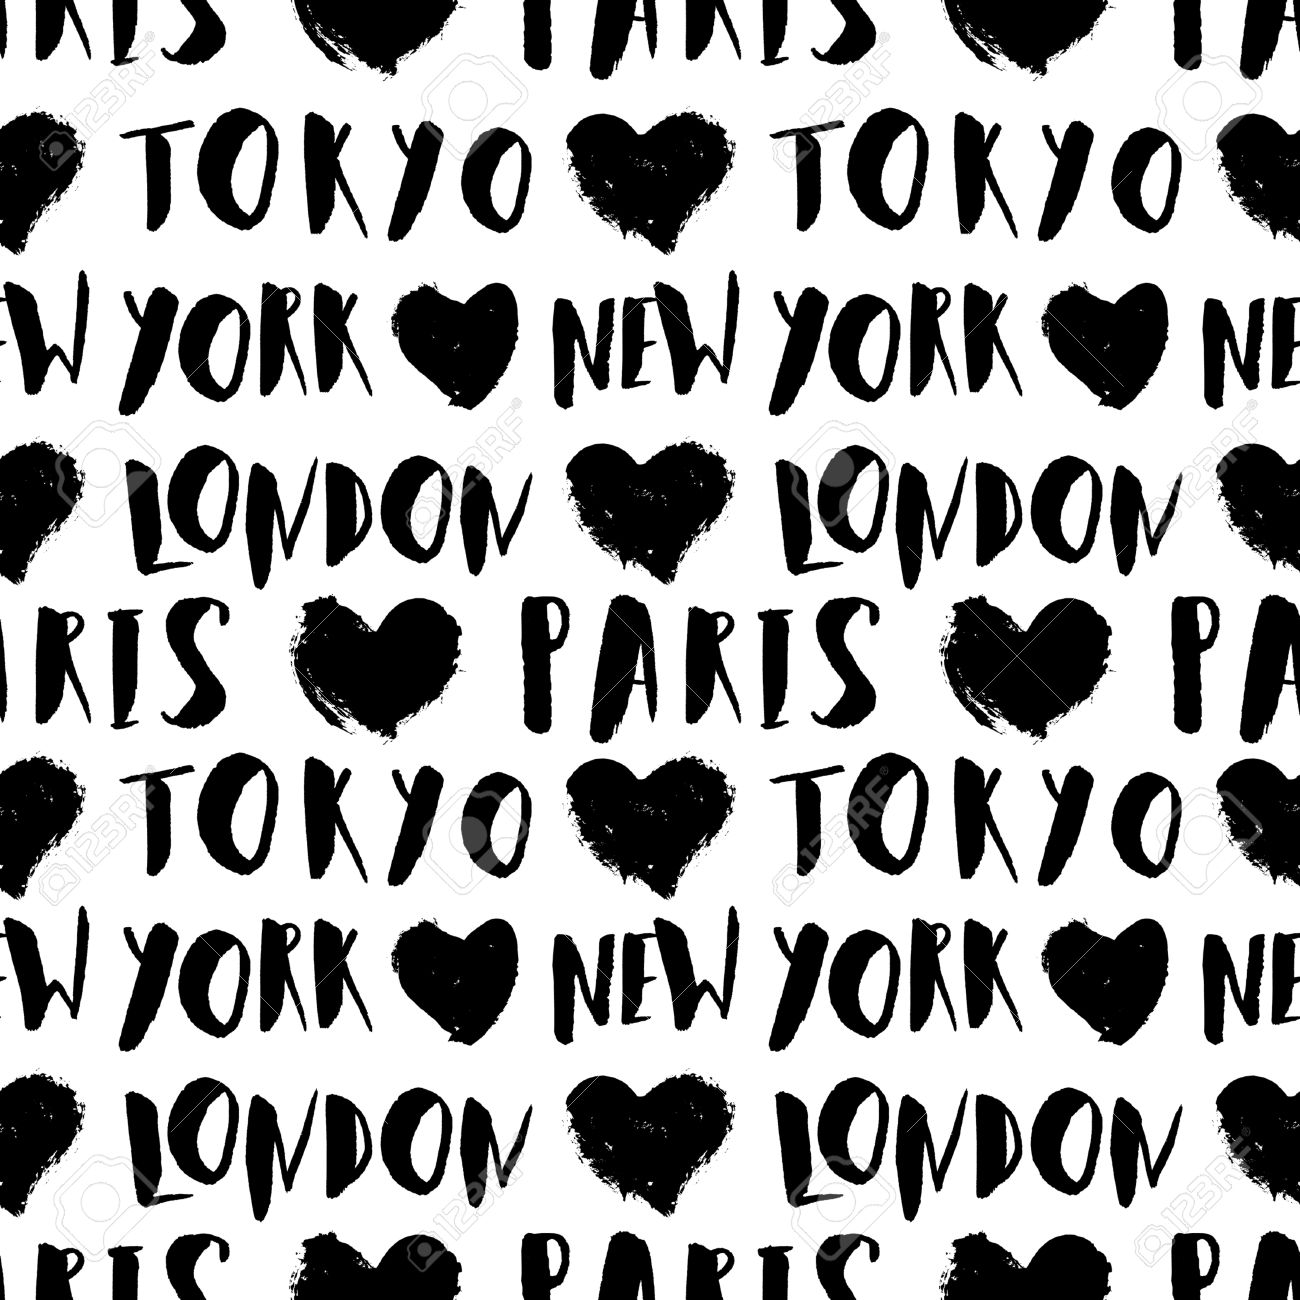 Typographic style seamless repeat pattern with hand lettered city names in black and white. Seamless travel background, greeting card template, poster, wrapping paper. - 51265337